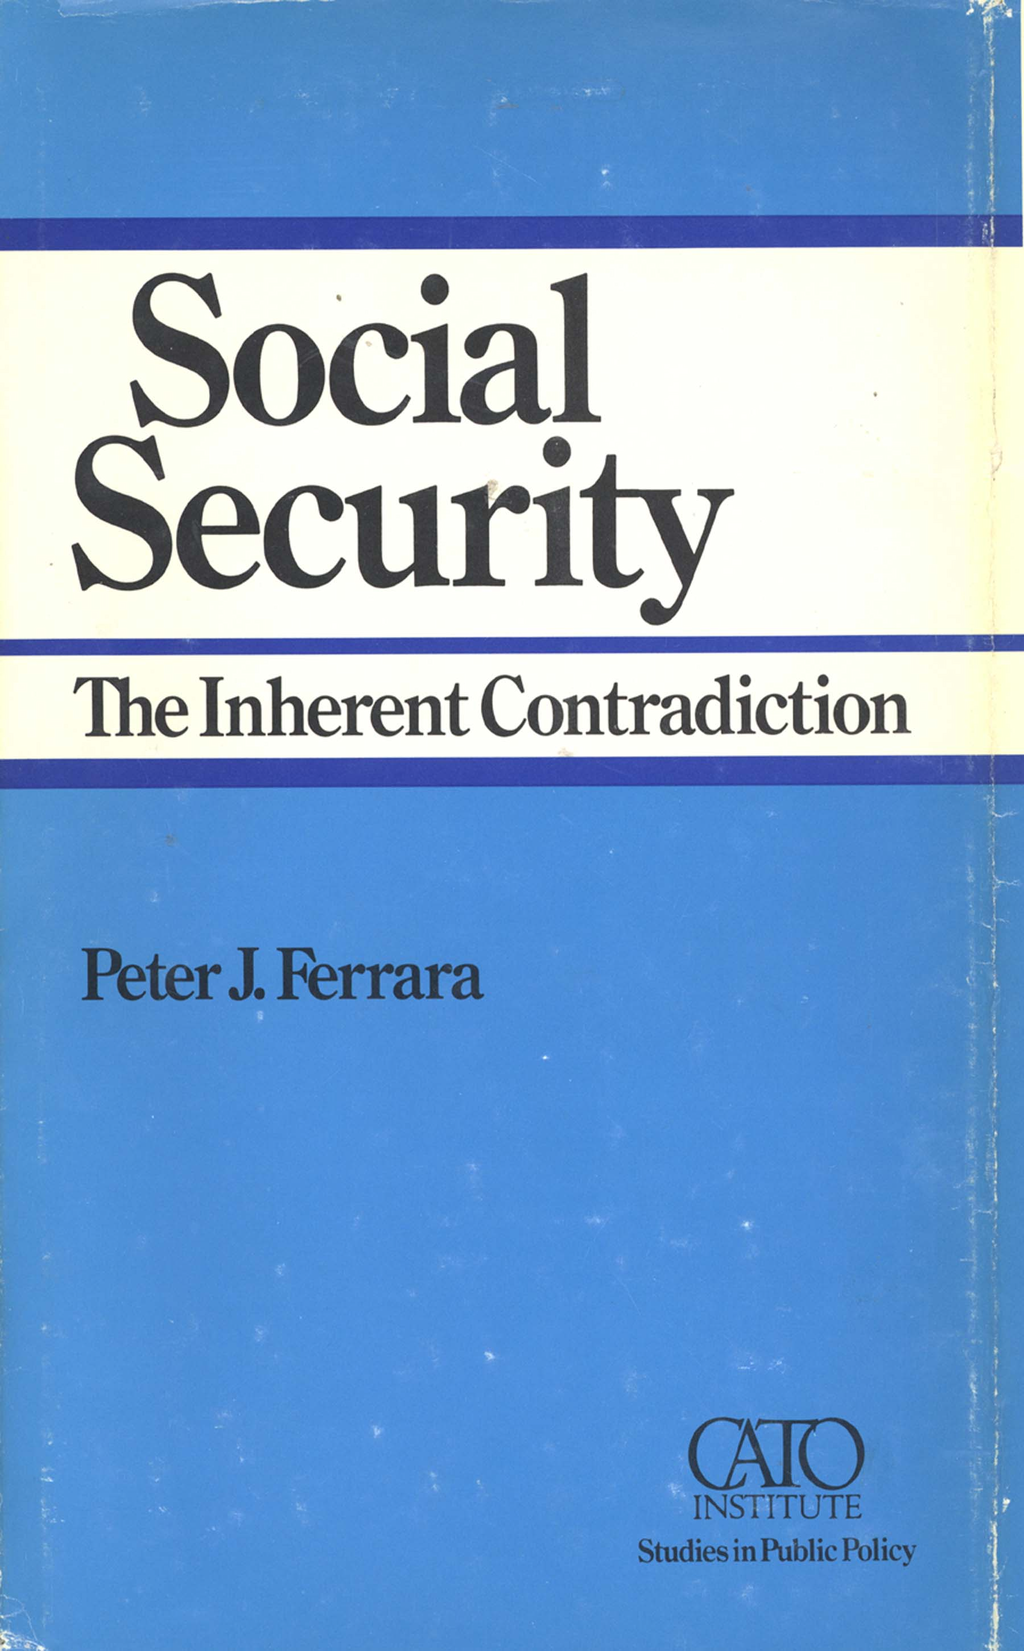 Social Security: The Inherent Contradiction